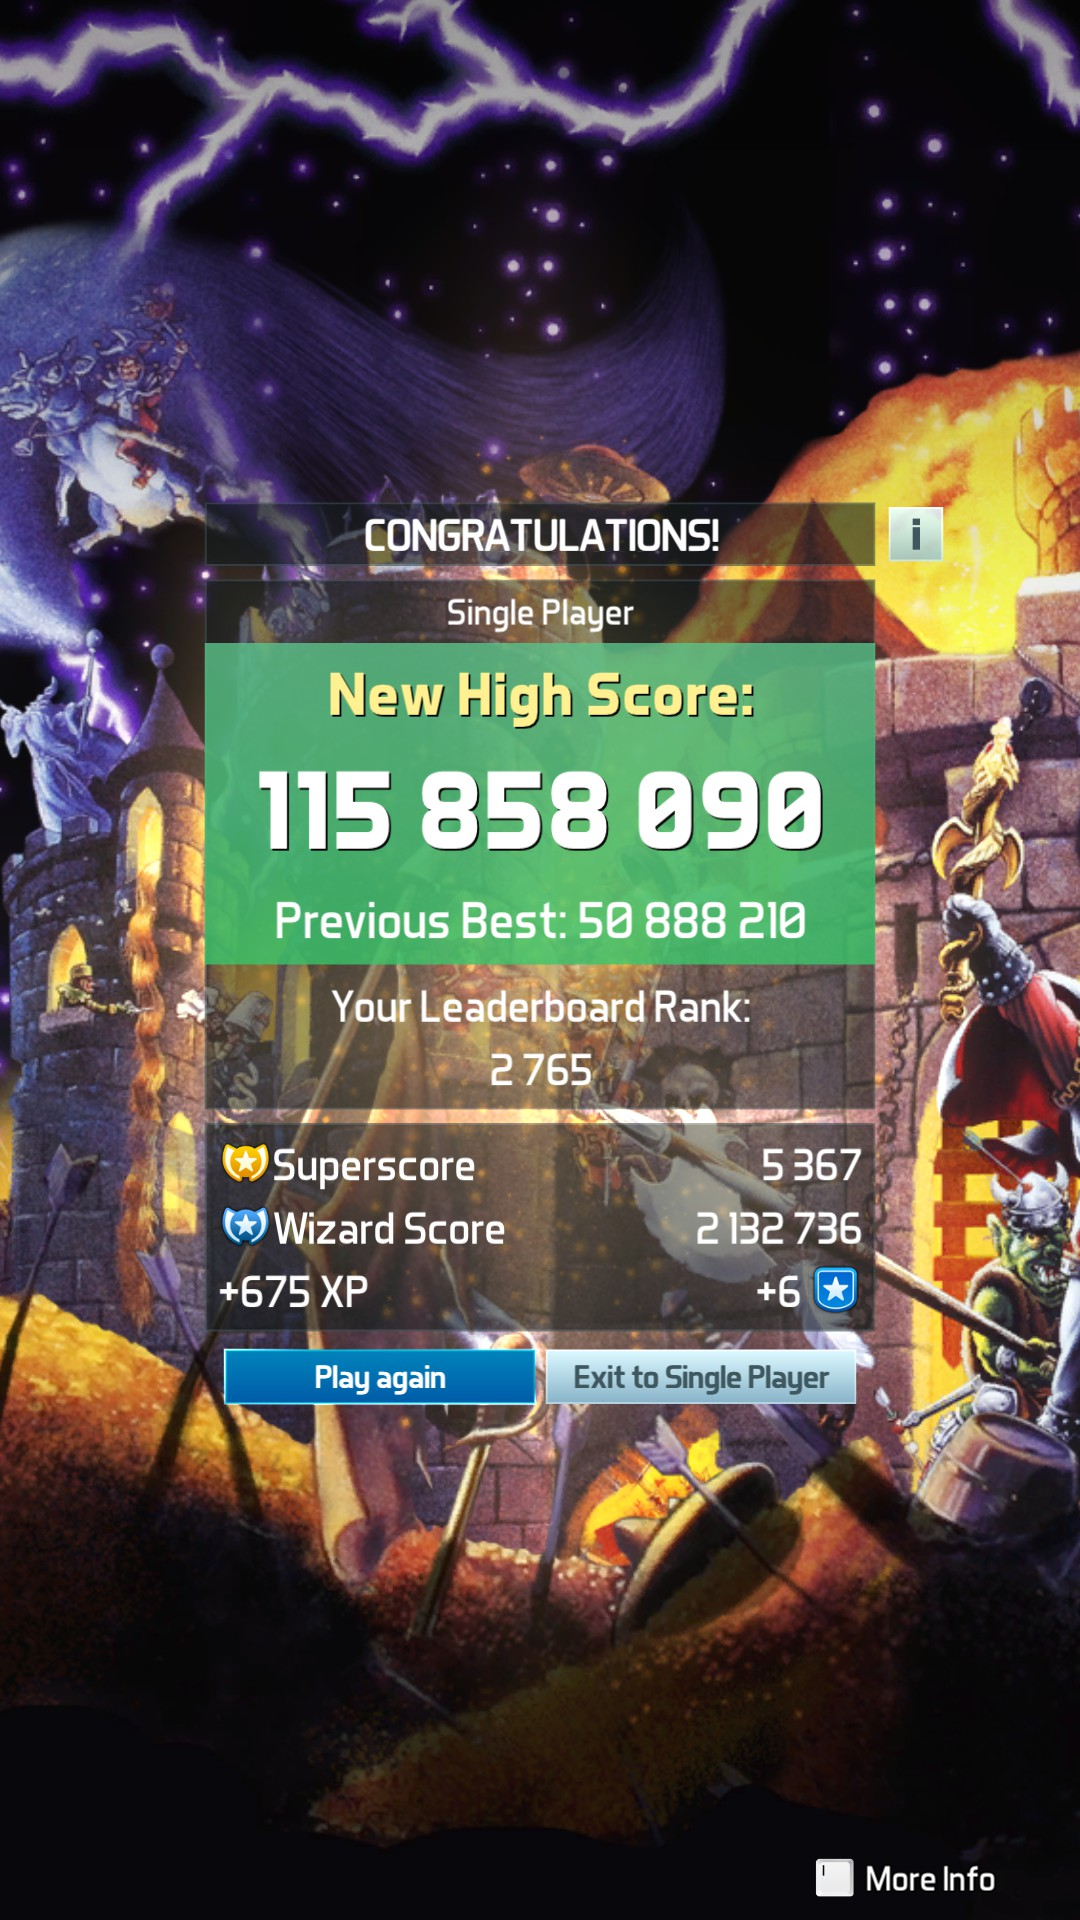 GTibel: Pinball FX3: Medieval Madness [Arcade] (PC) 115,855,090 points on 2019-01-23 02:03:49